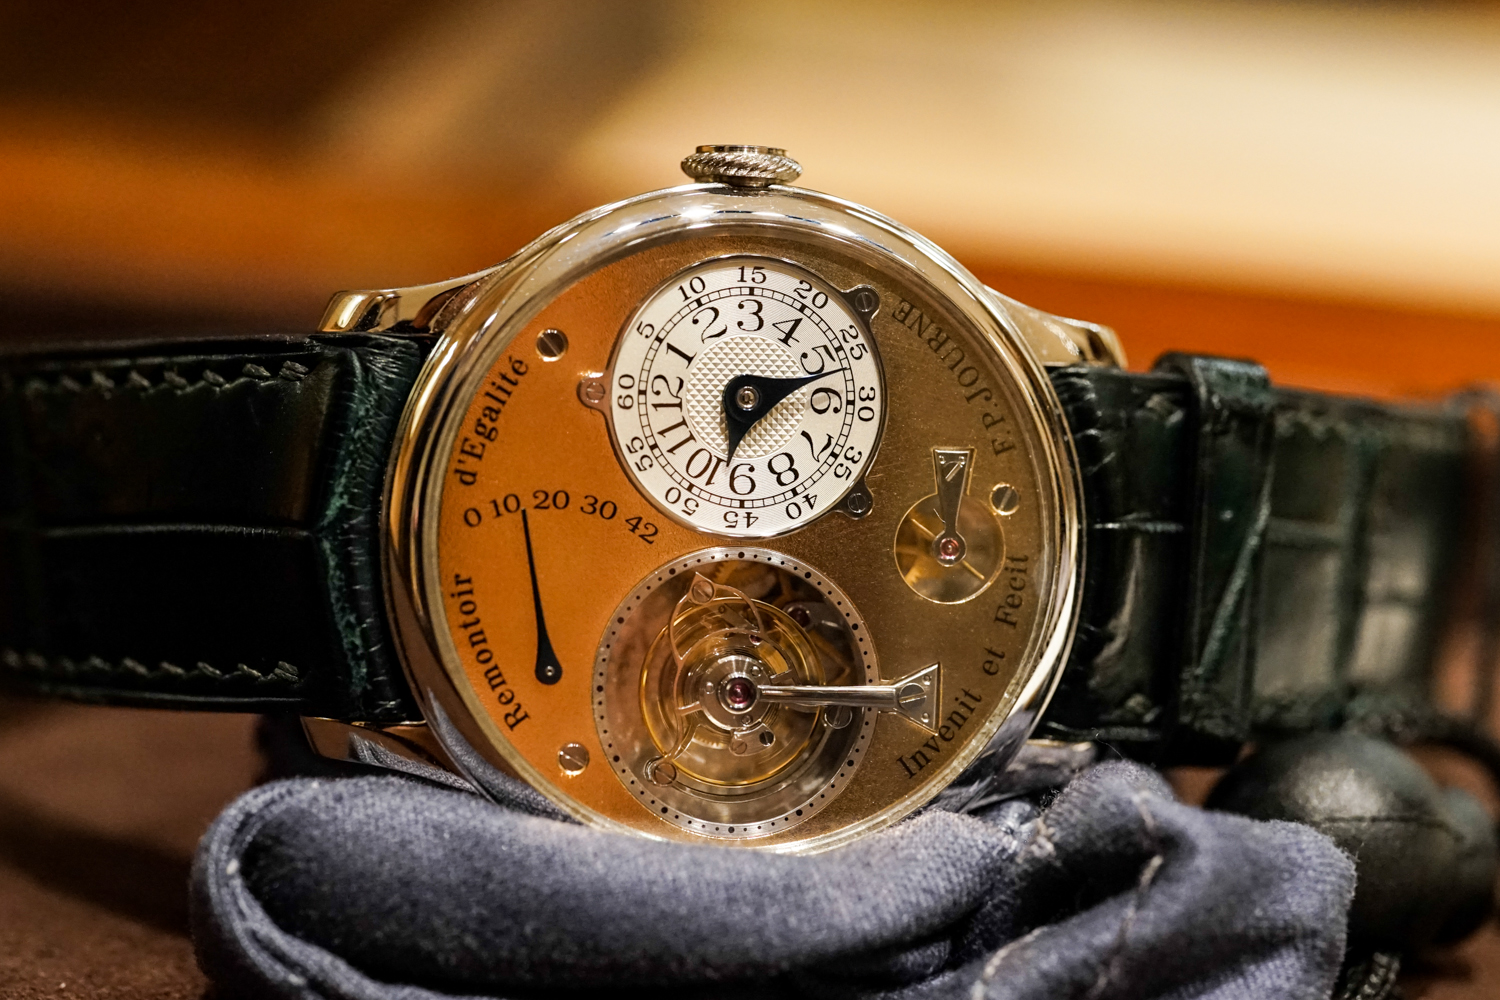 FP Journe Tourbillon Souverain-1.jpg